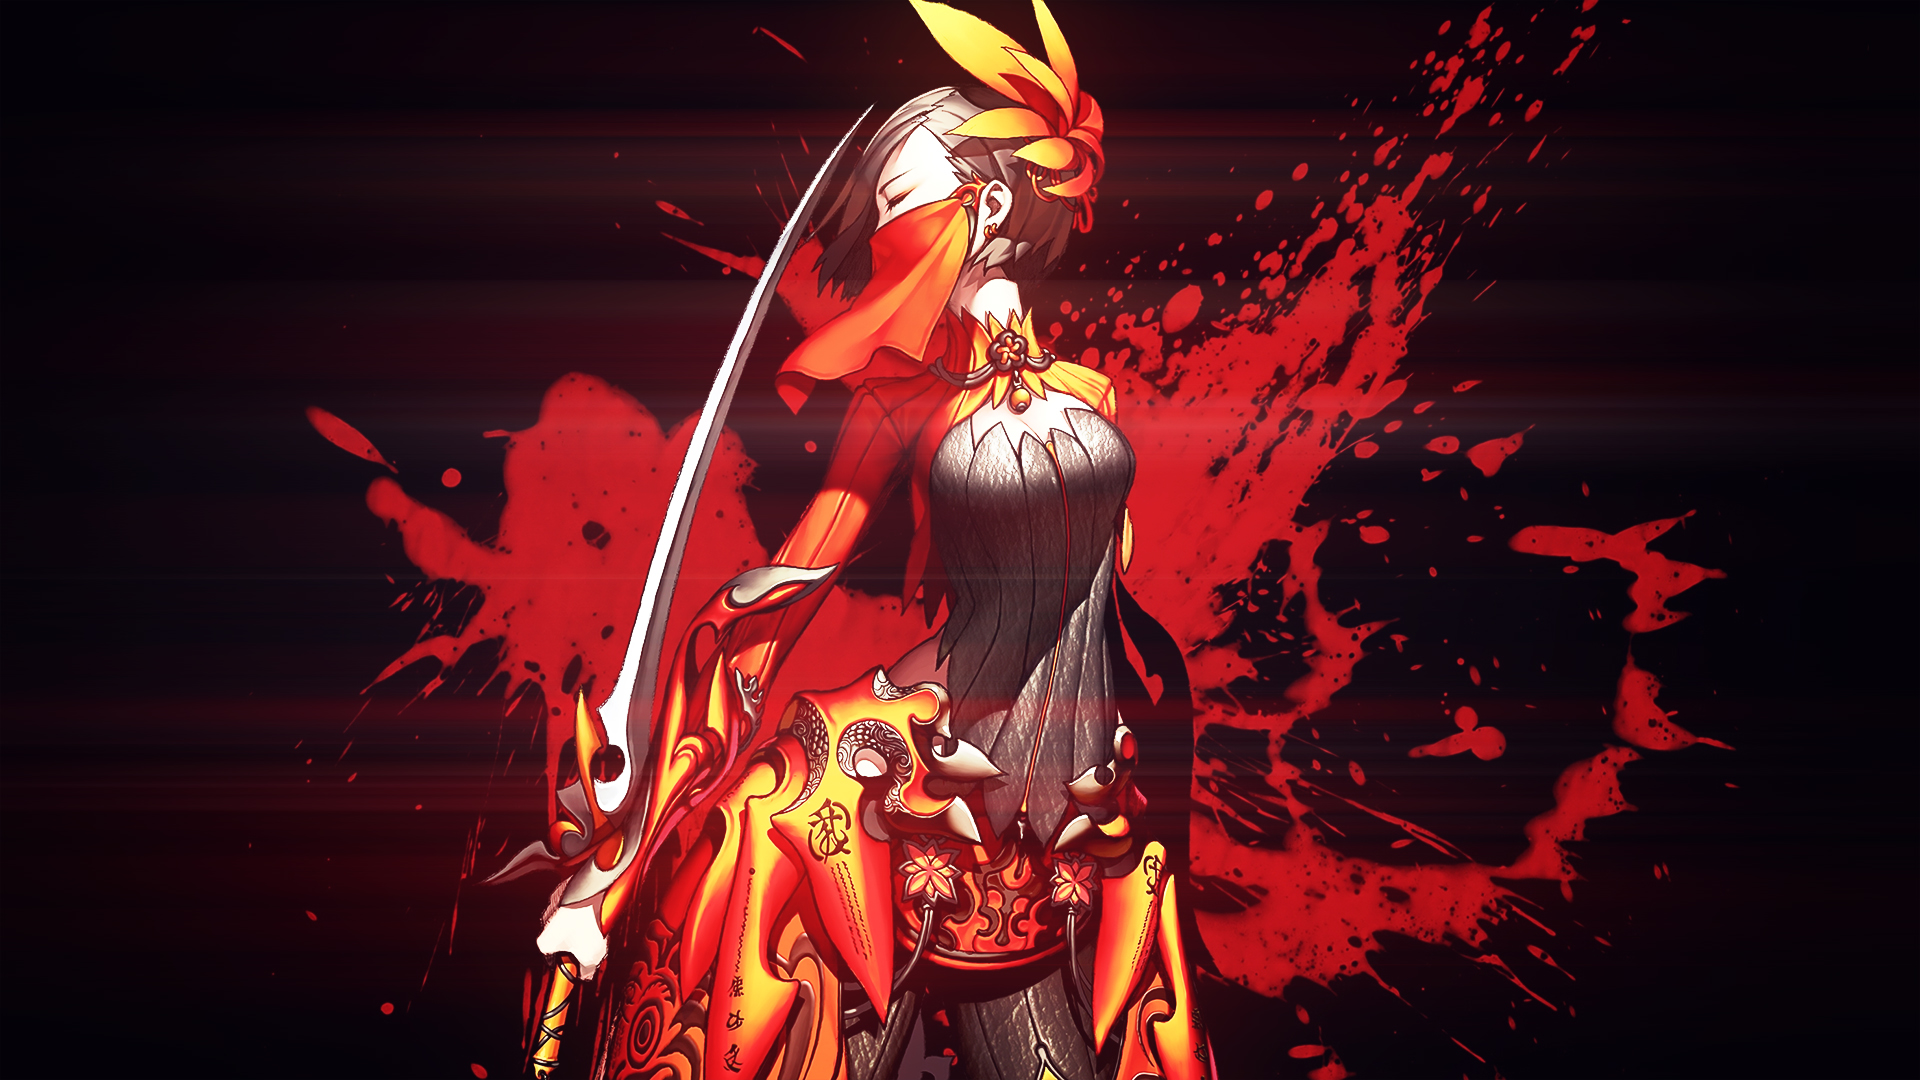 Blade N Soul Anime Characters : Blade and soul wallpaper by kampinis on deviantart